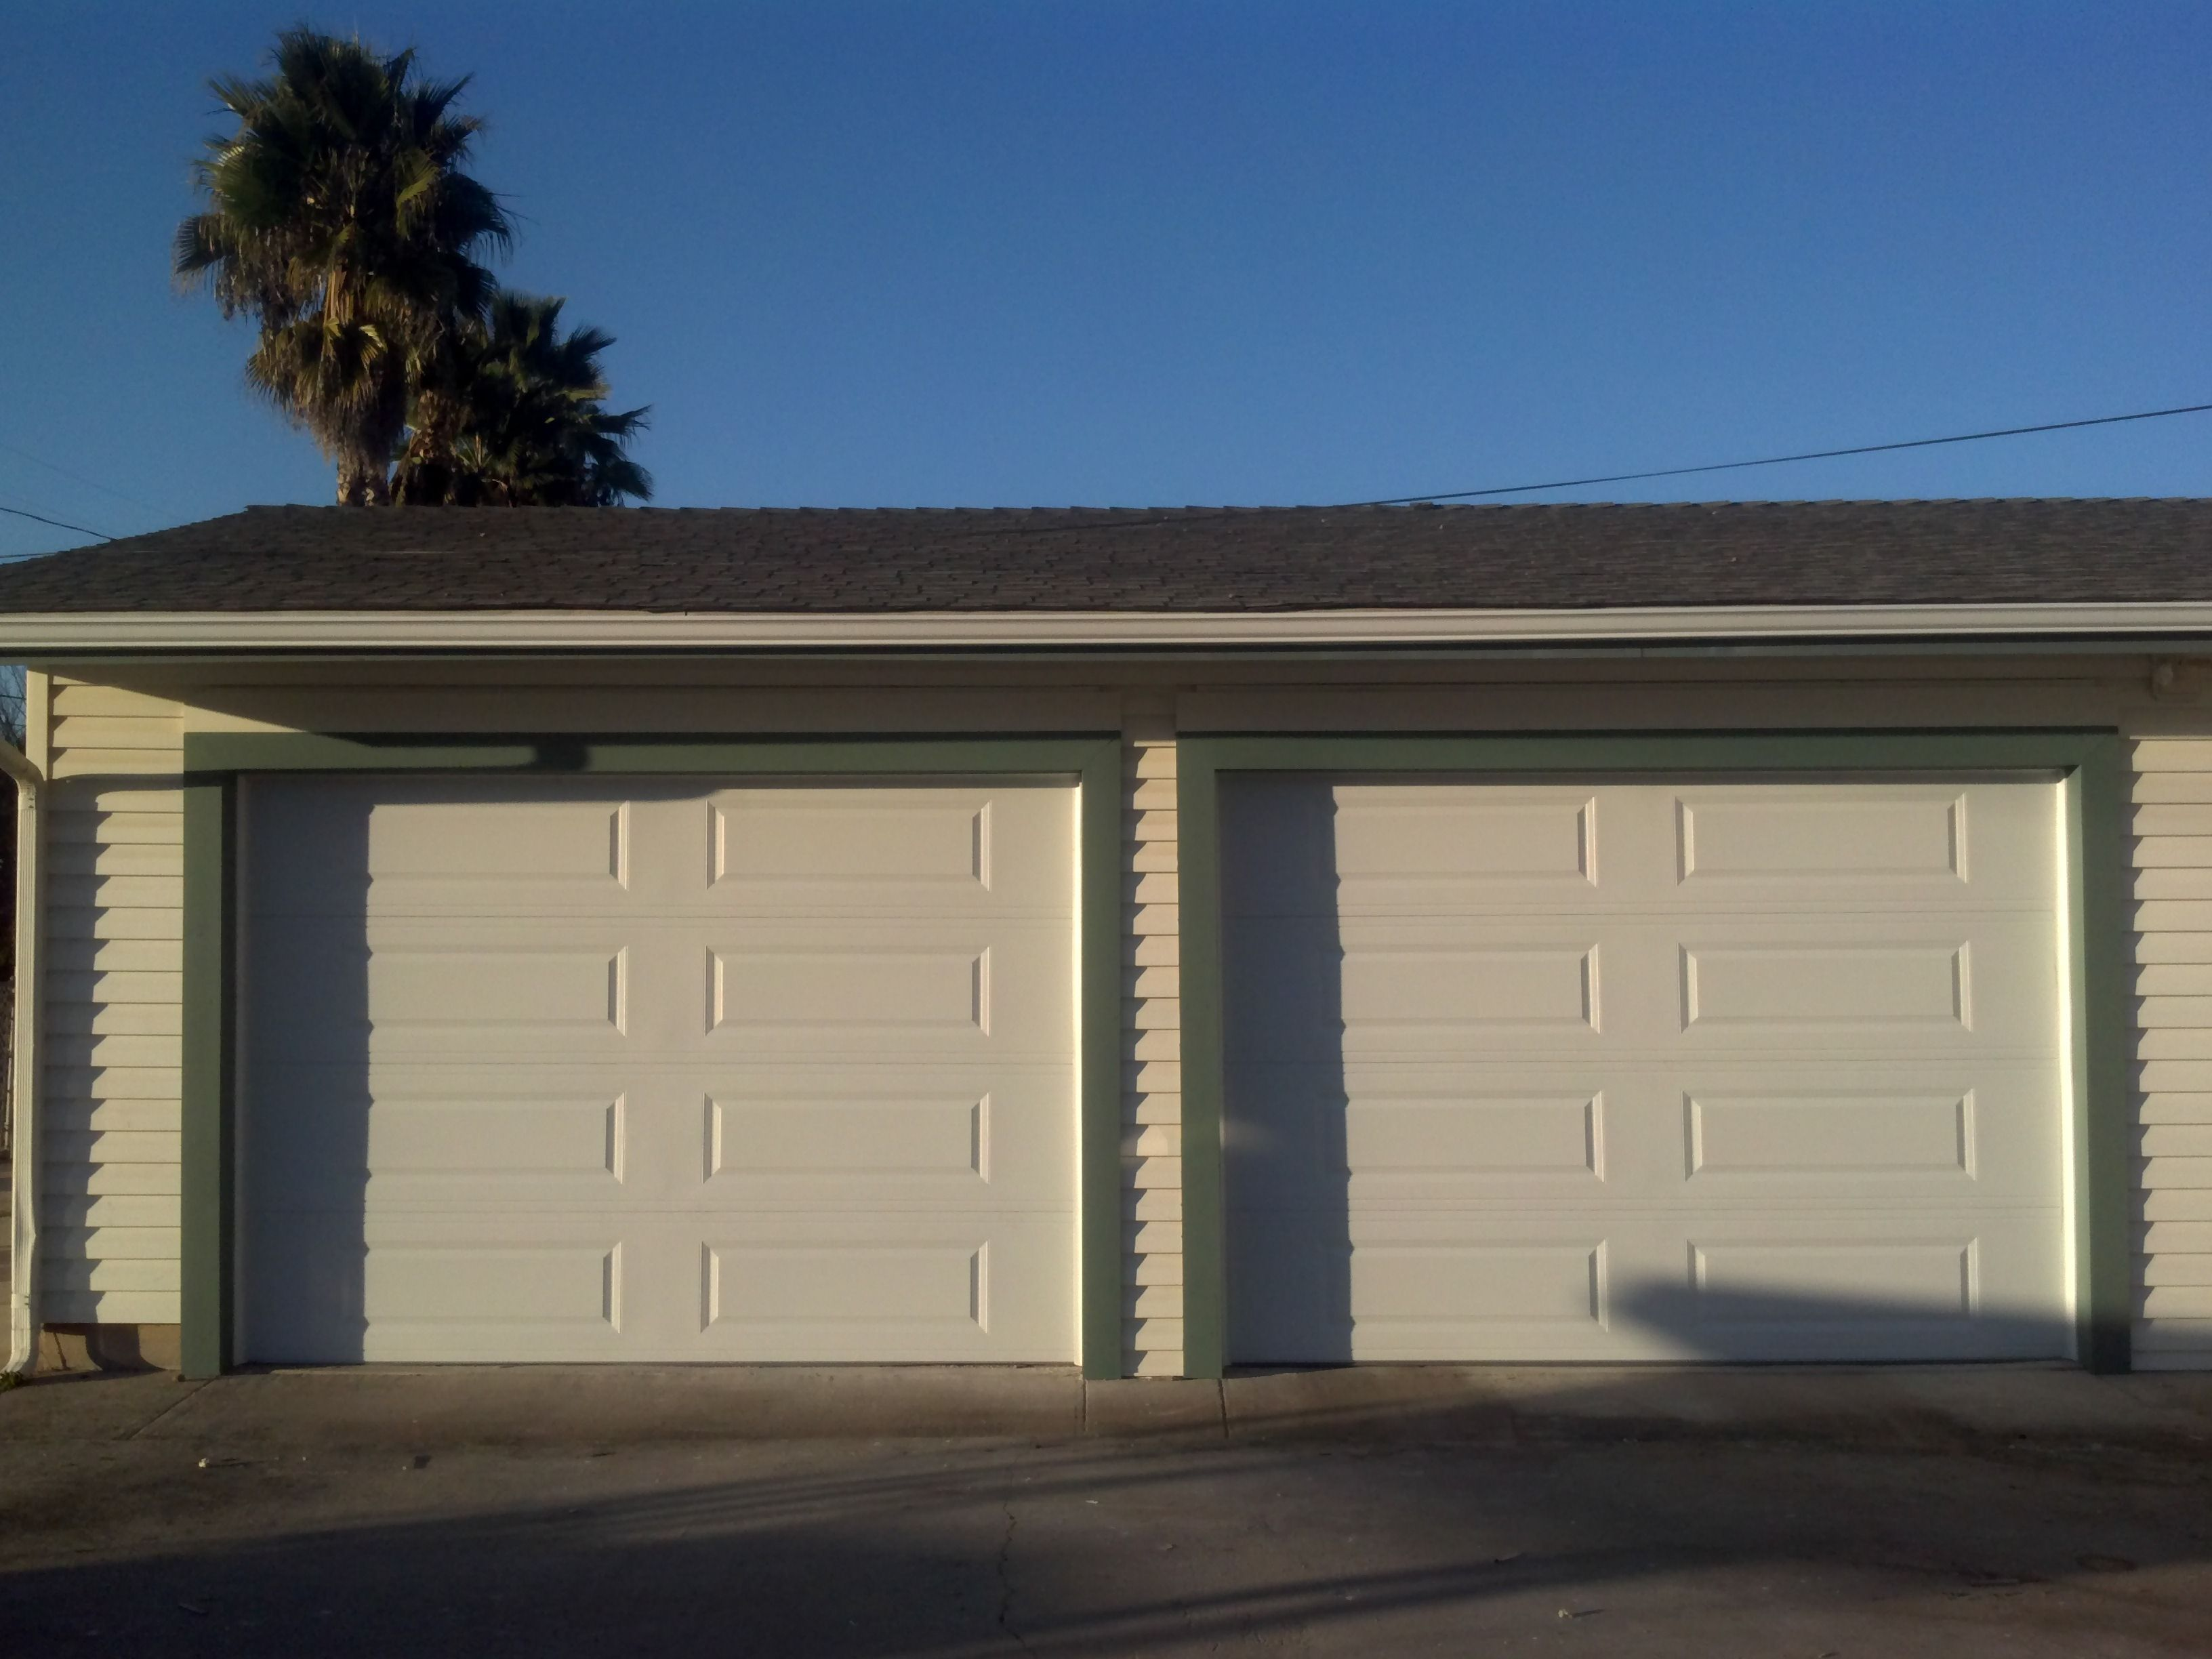 10 X 7 Garage Door With Windows Httpvoteno123 Pinterest